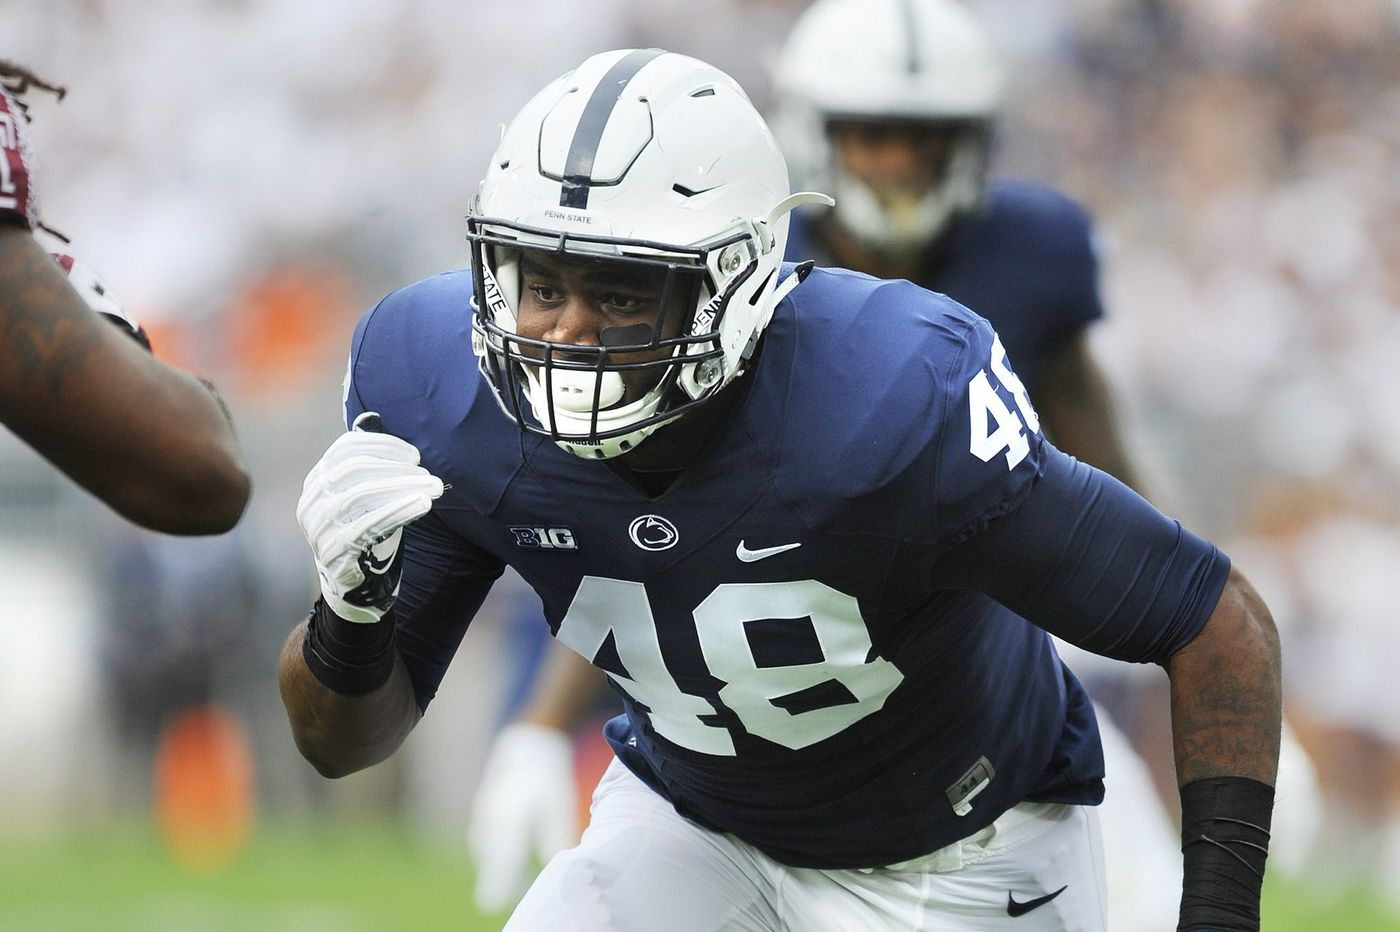 Philly's Shareef Miller looking for a big season | Penn State defensive line preview